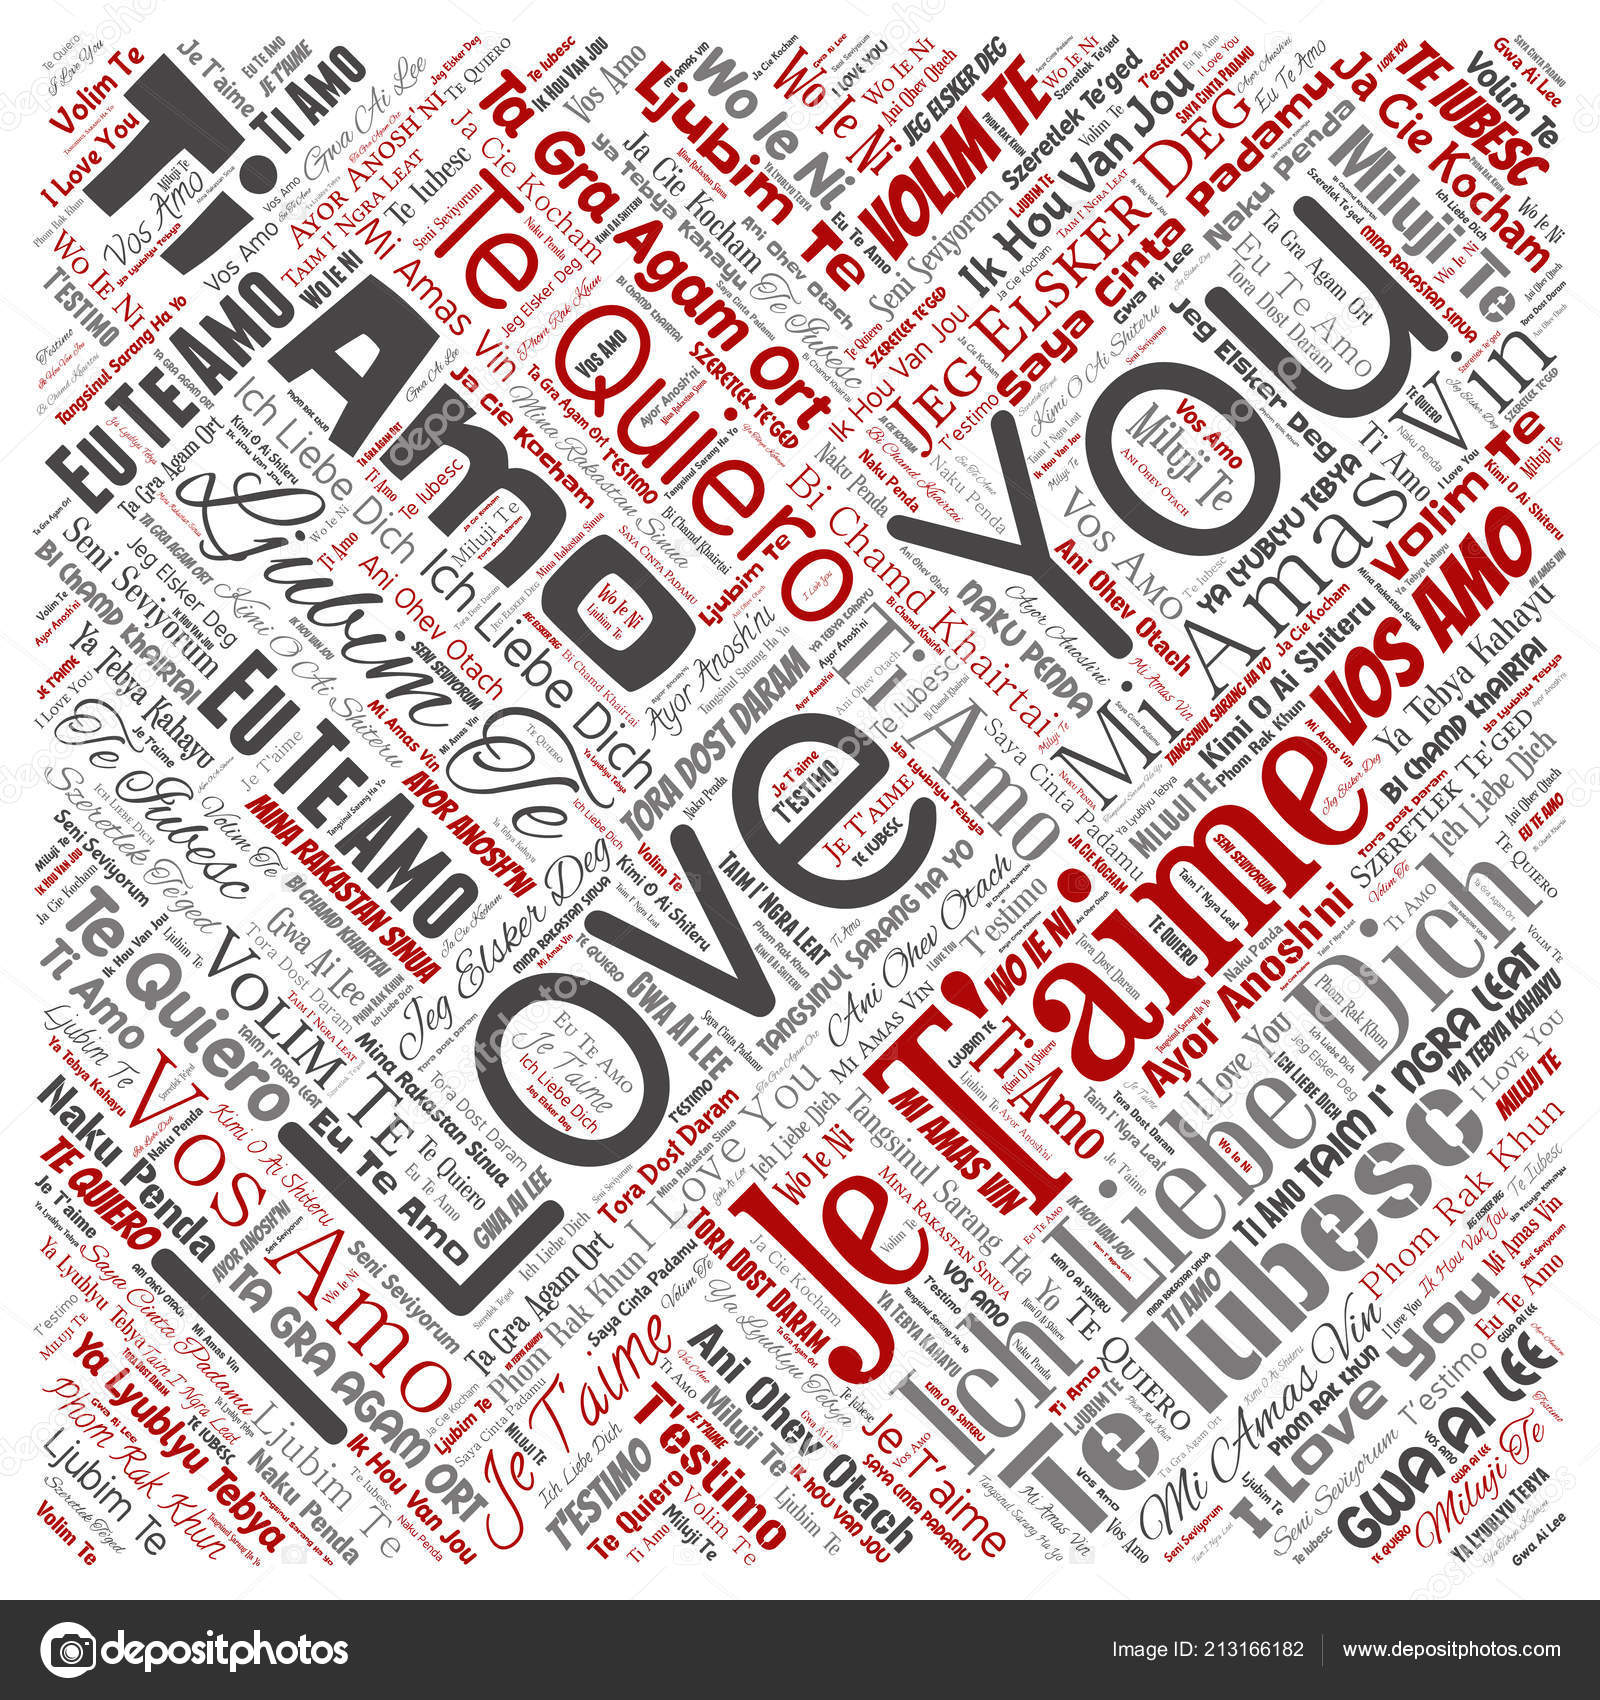 Vector Conceptual Sweet Romantic I Love You Multilingual Message Square Red Word Cloud Isolated Background Collage Of Valentine Day Romance Affection